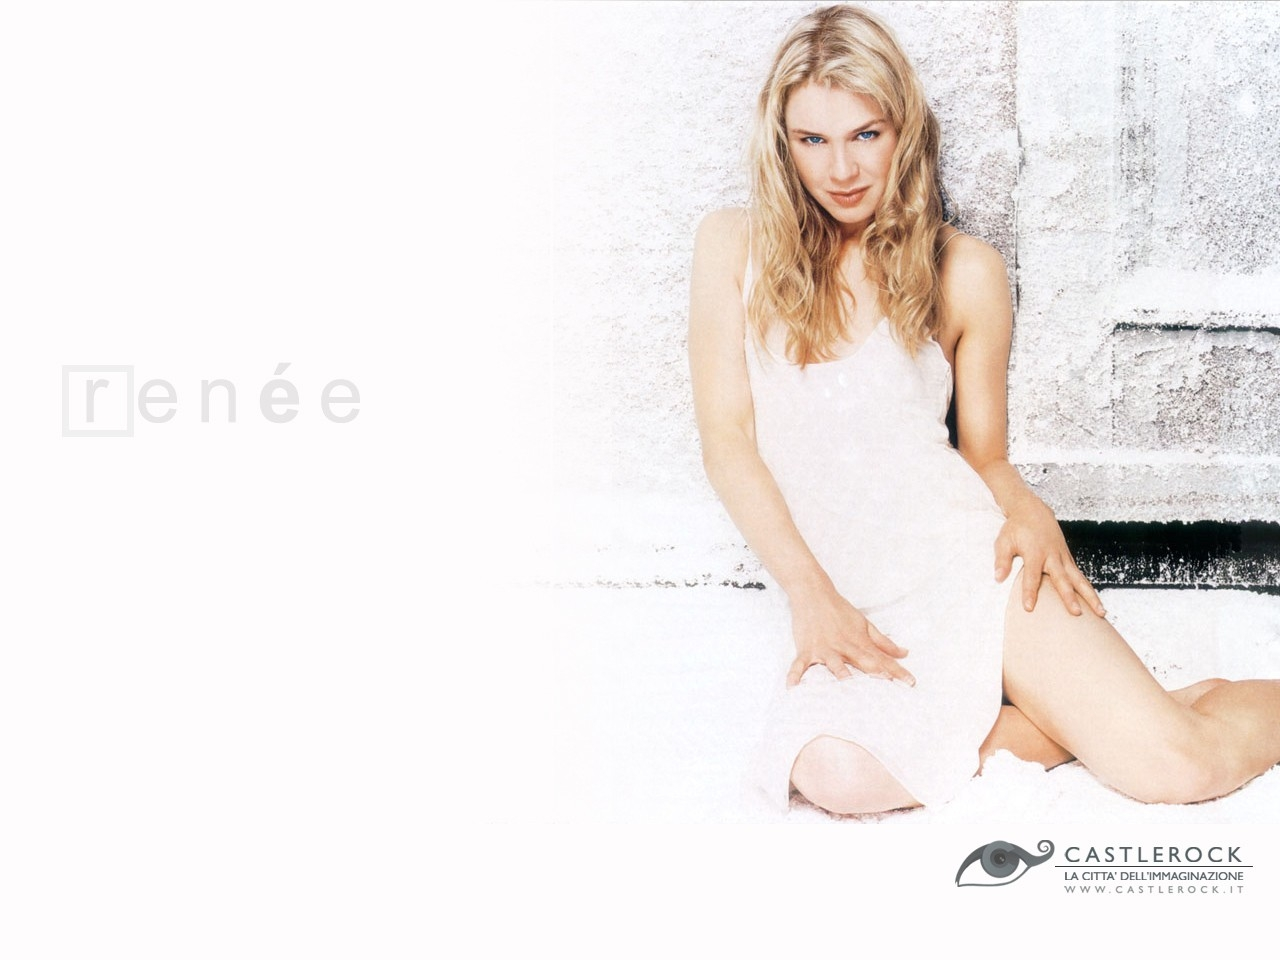 Wallpaper di Renée Zellweger in bianco